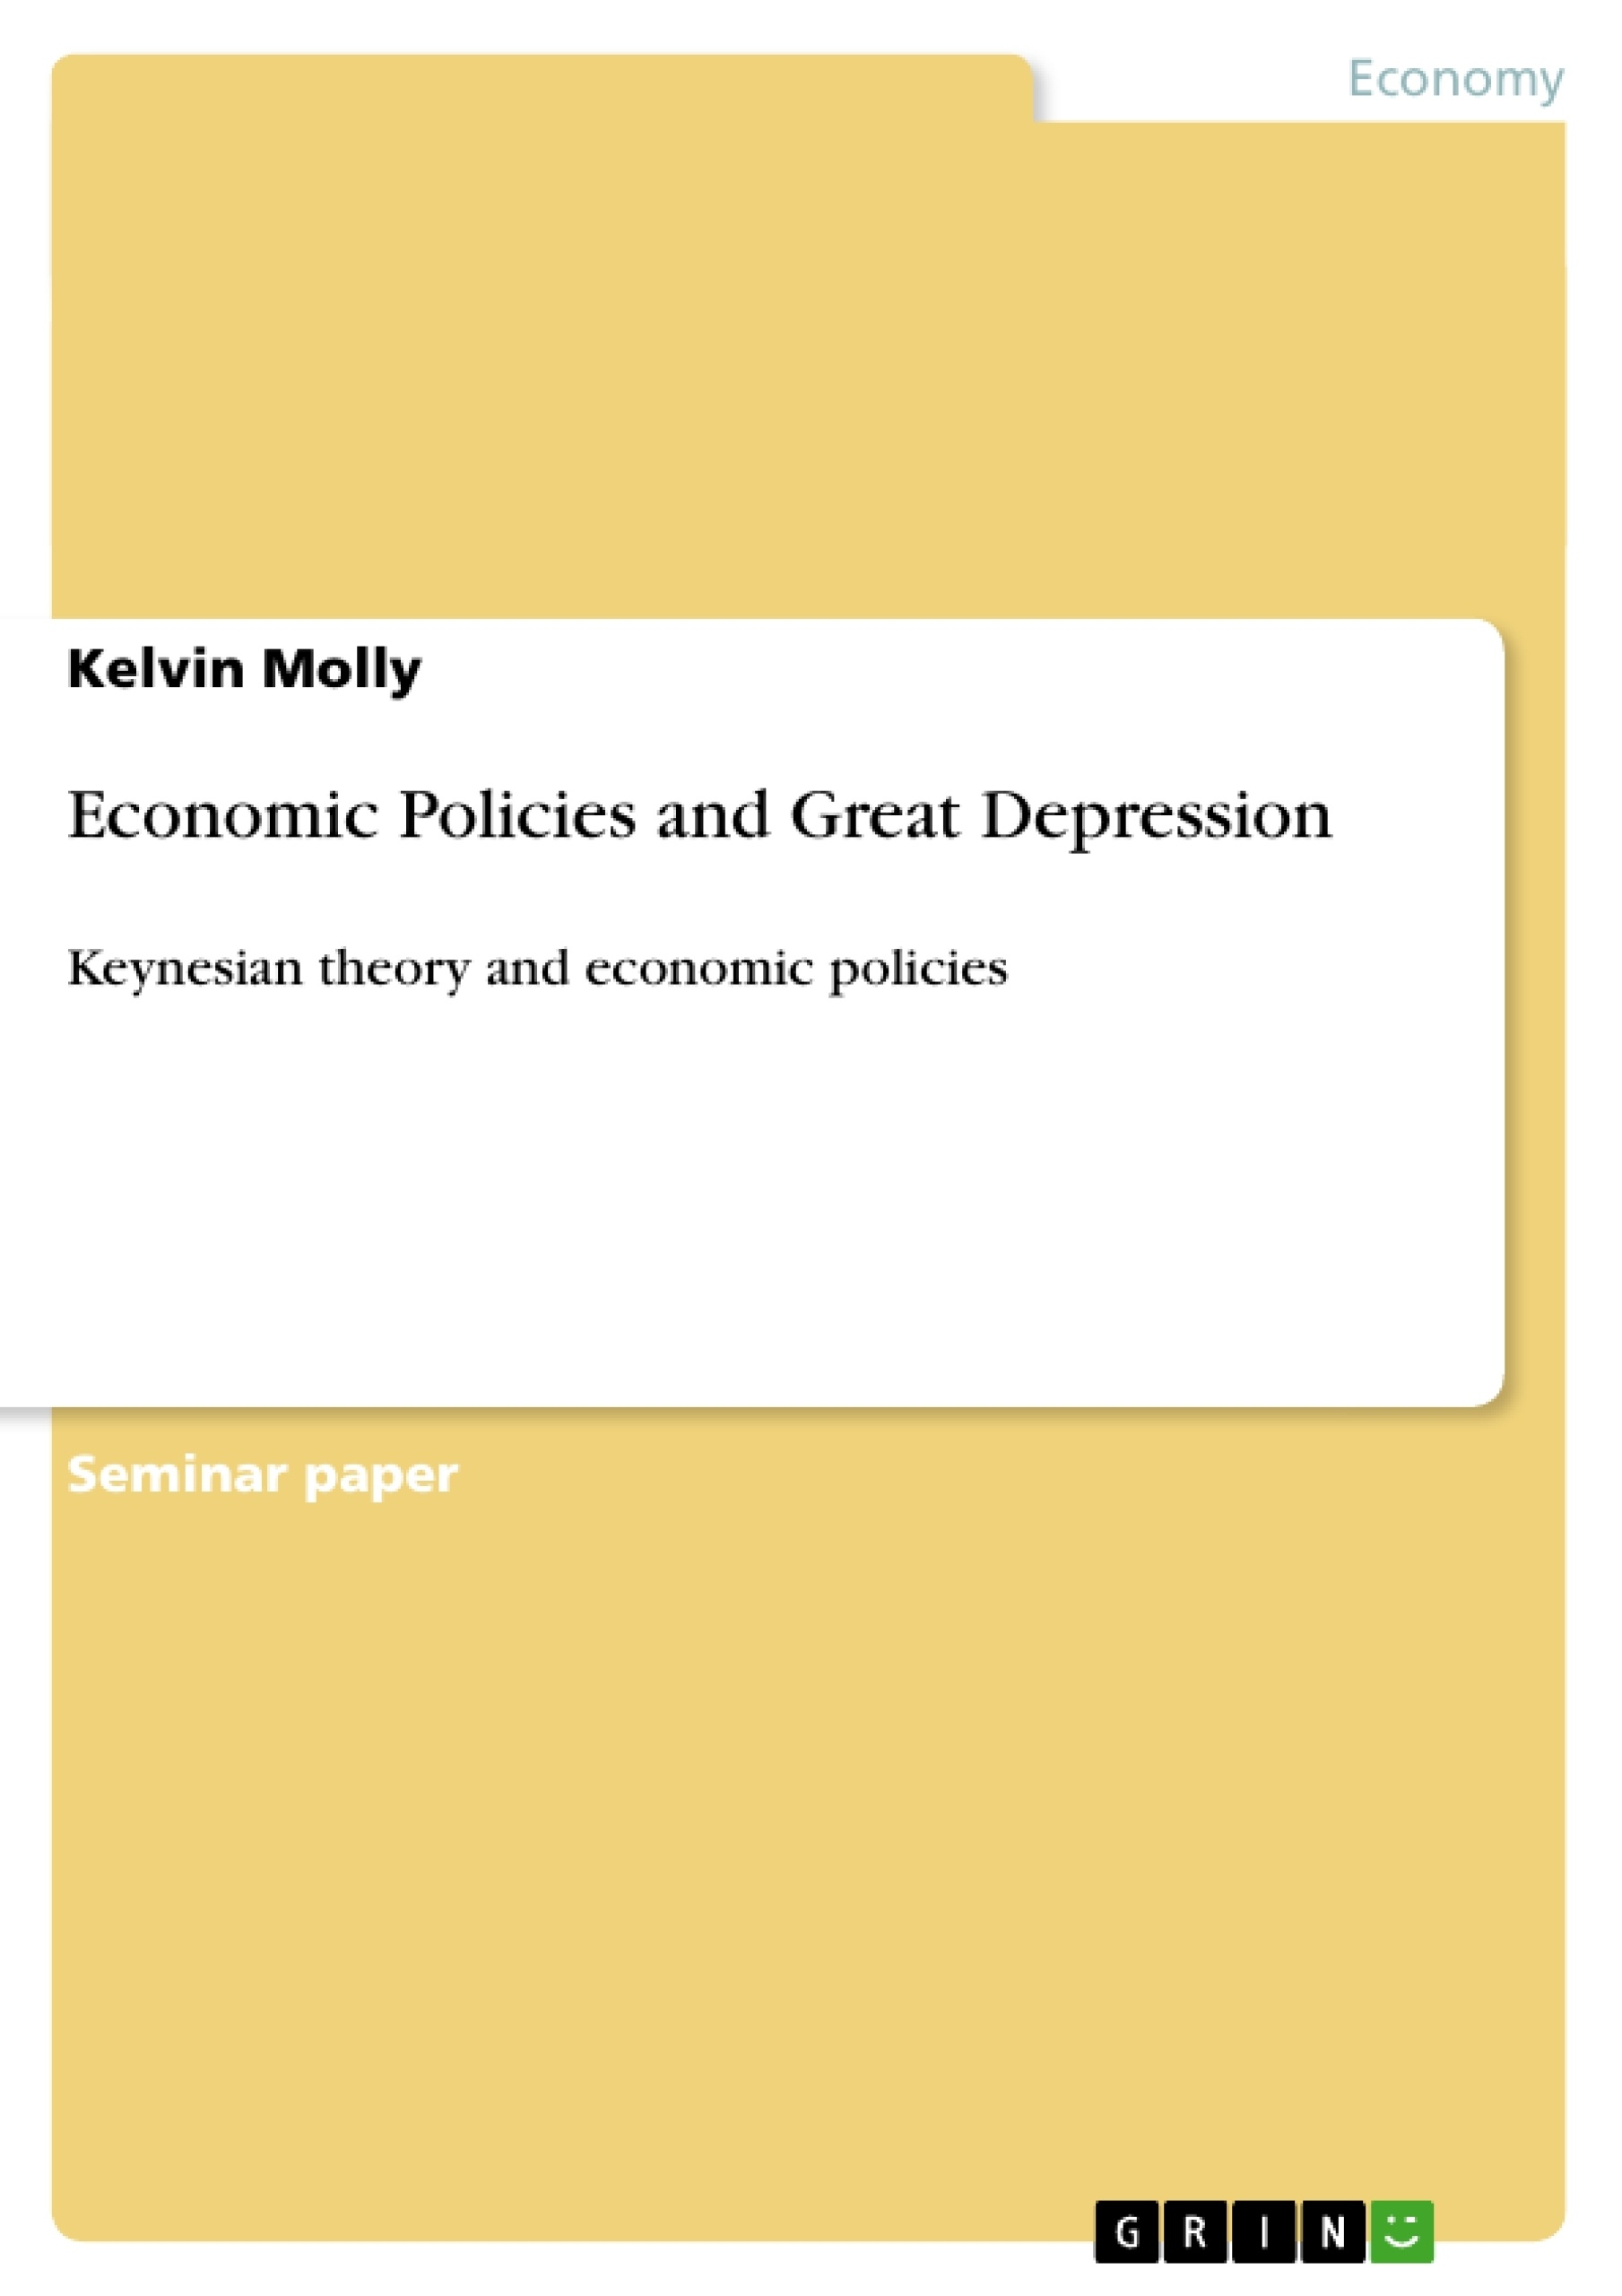 Title: Economic Policies and Great Depression